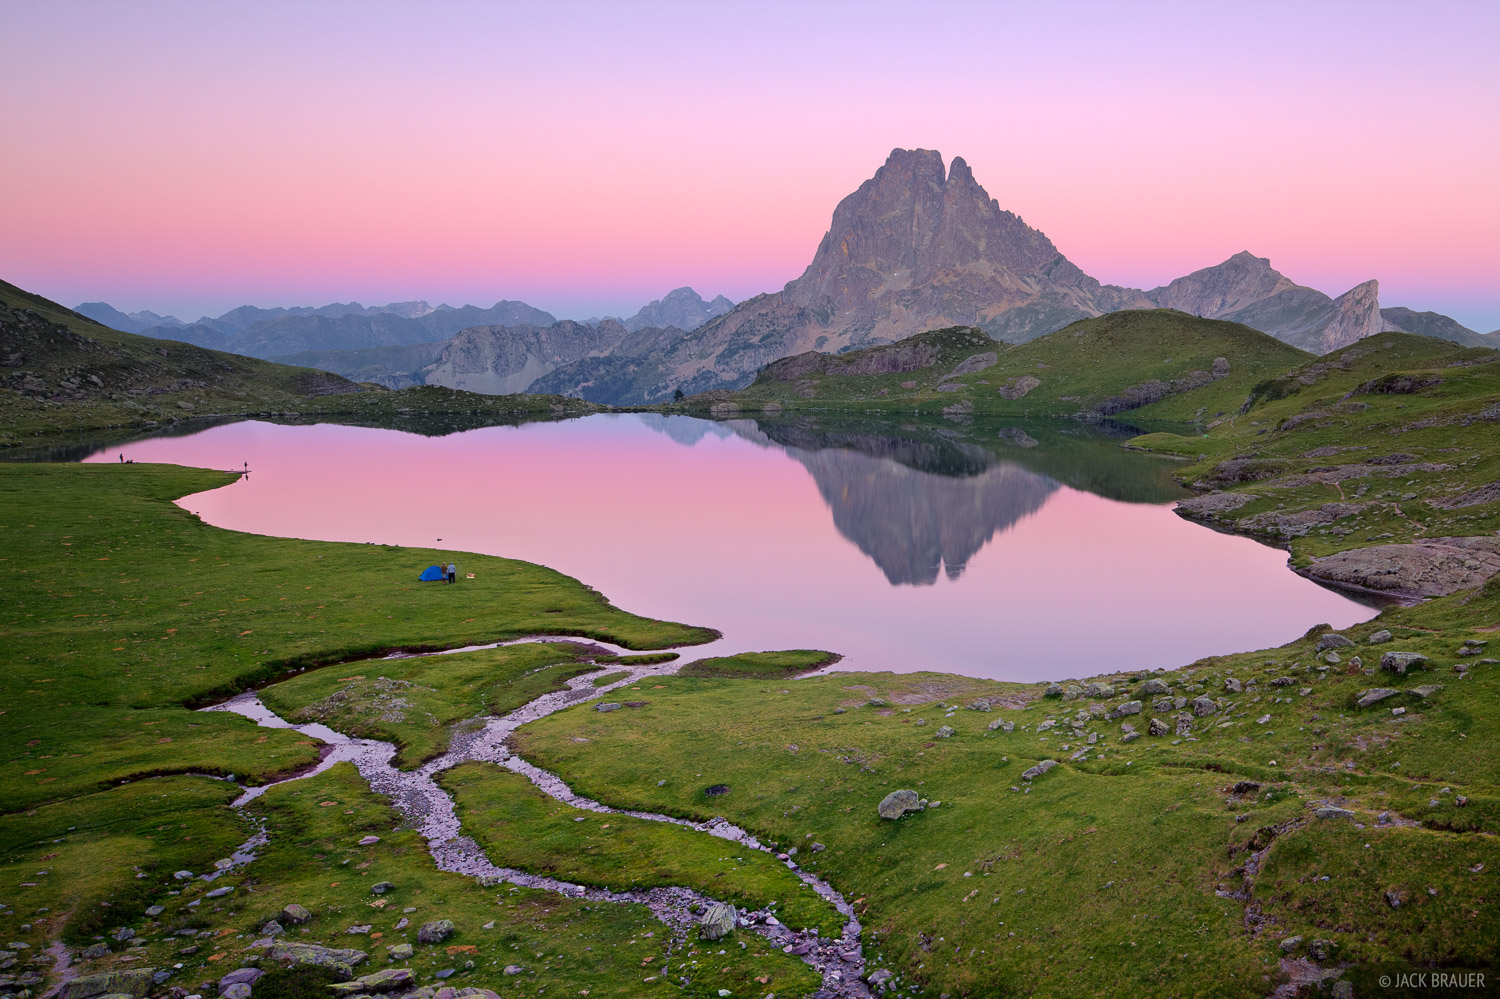 Lac Gentau Reflection Pyrenees France Mountain